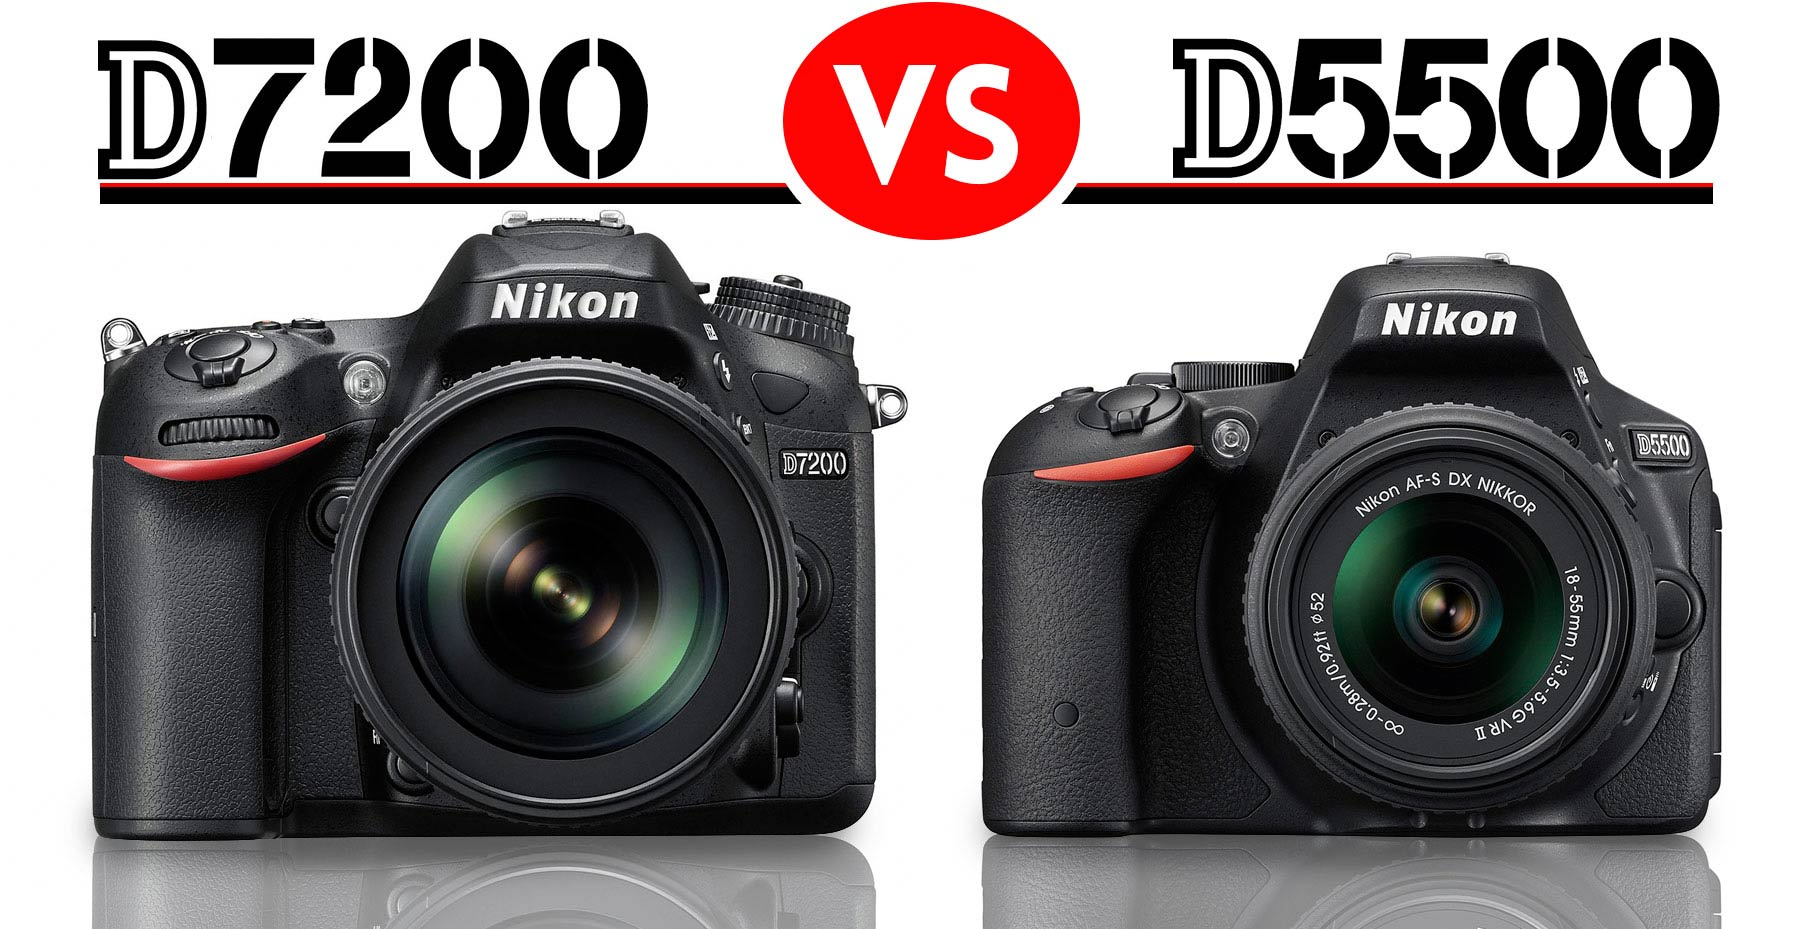 Nikon D5500 Vs D7200 >> Nikon D5500 vs D7200: Which Should You Buy? - Light And Matter